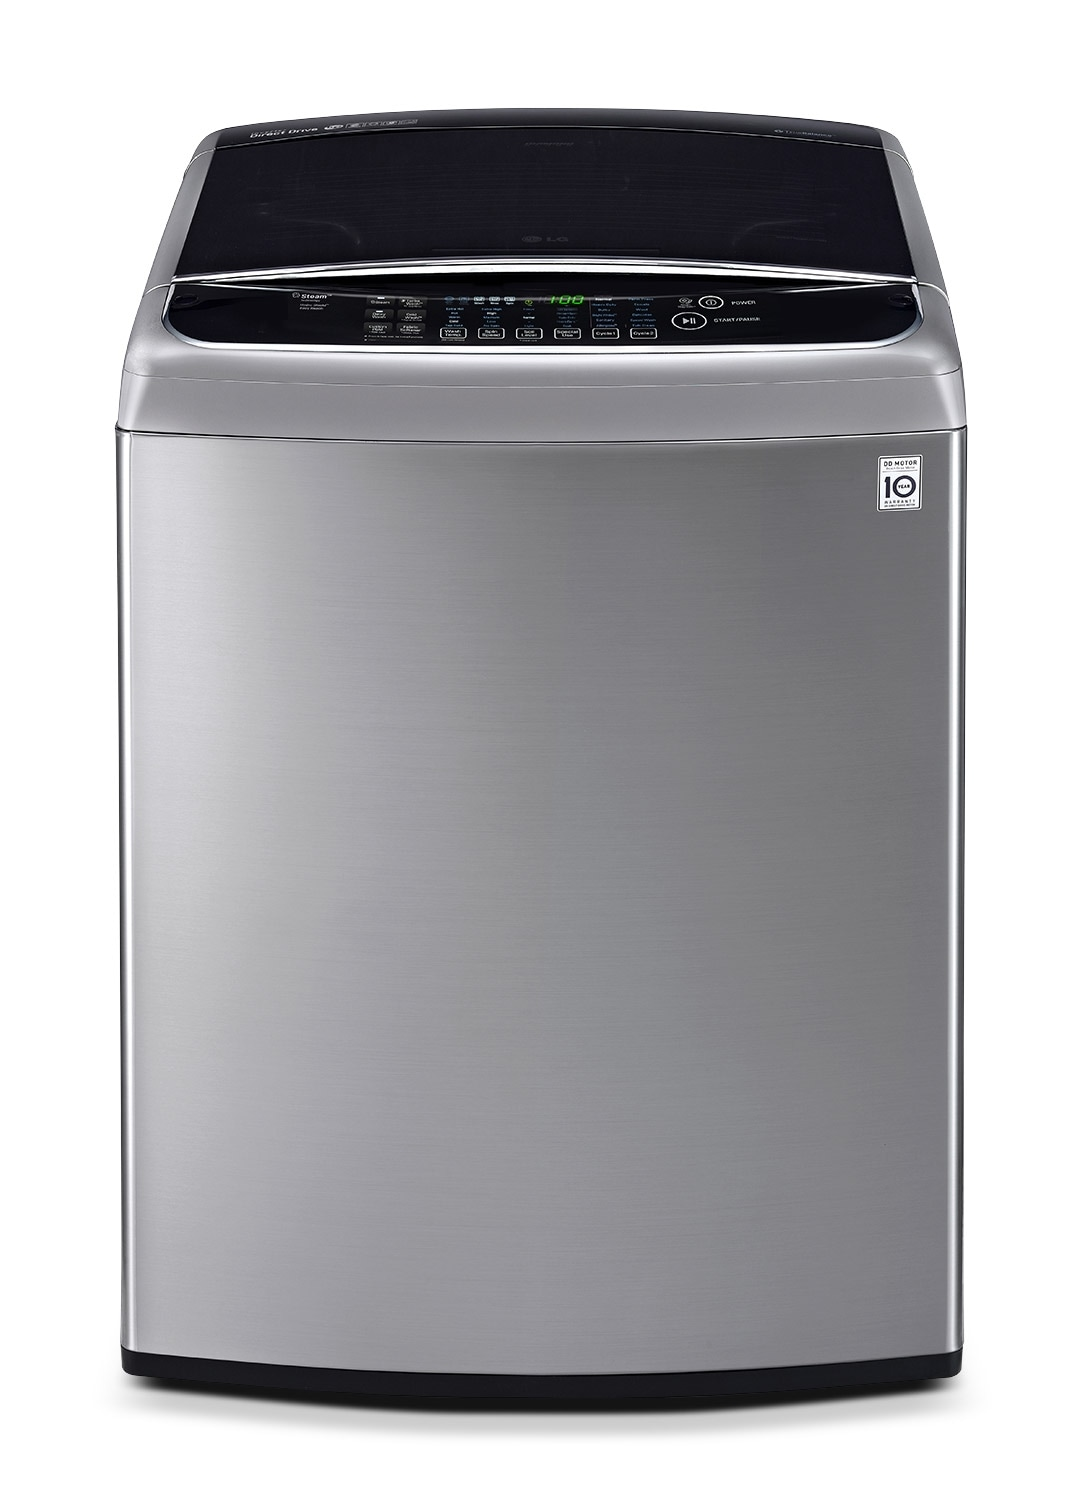 Washers and Dryers - LG 5.8 Cu. Ft. Top-Load Washer - Graphite Steel